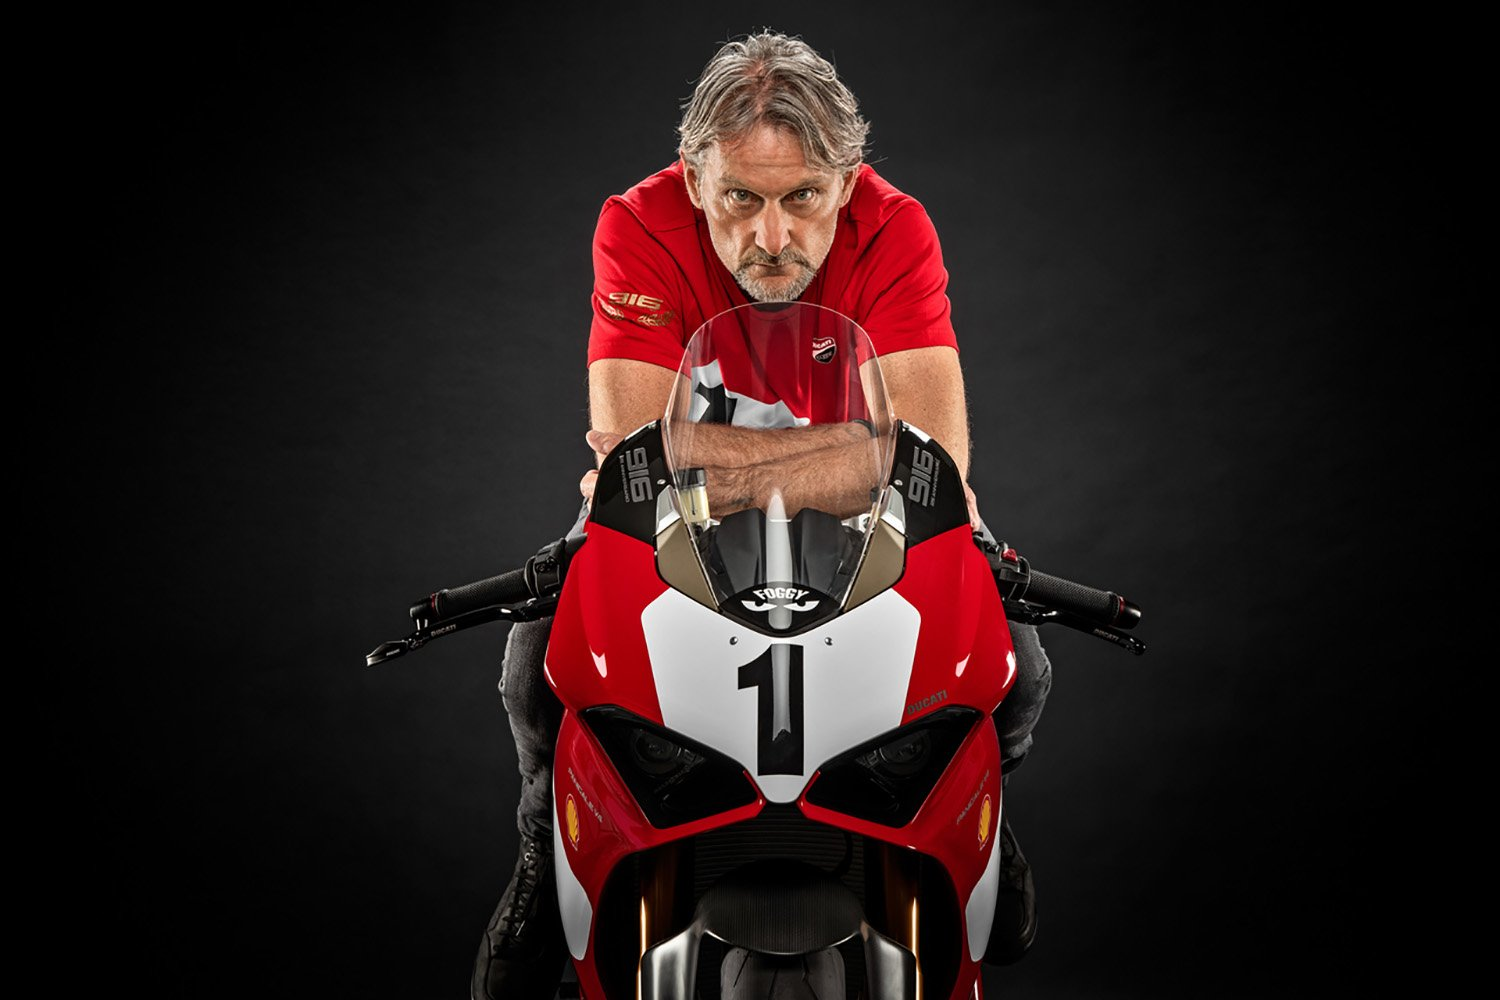 Special edition Ducati Panigale V4 25˚ Anniversario 916 expected in Malaysian shores 2020